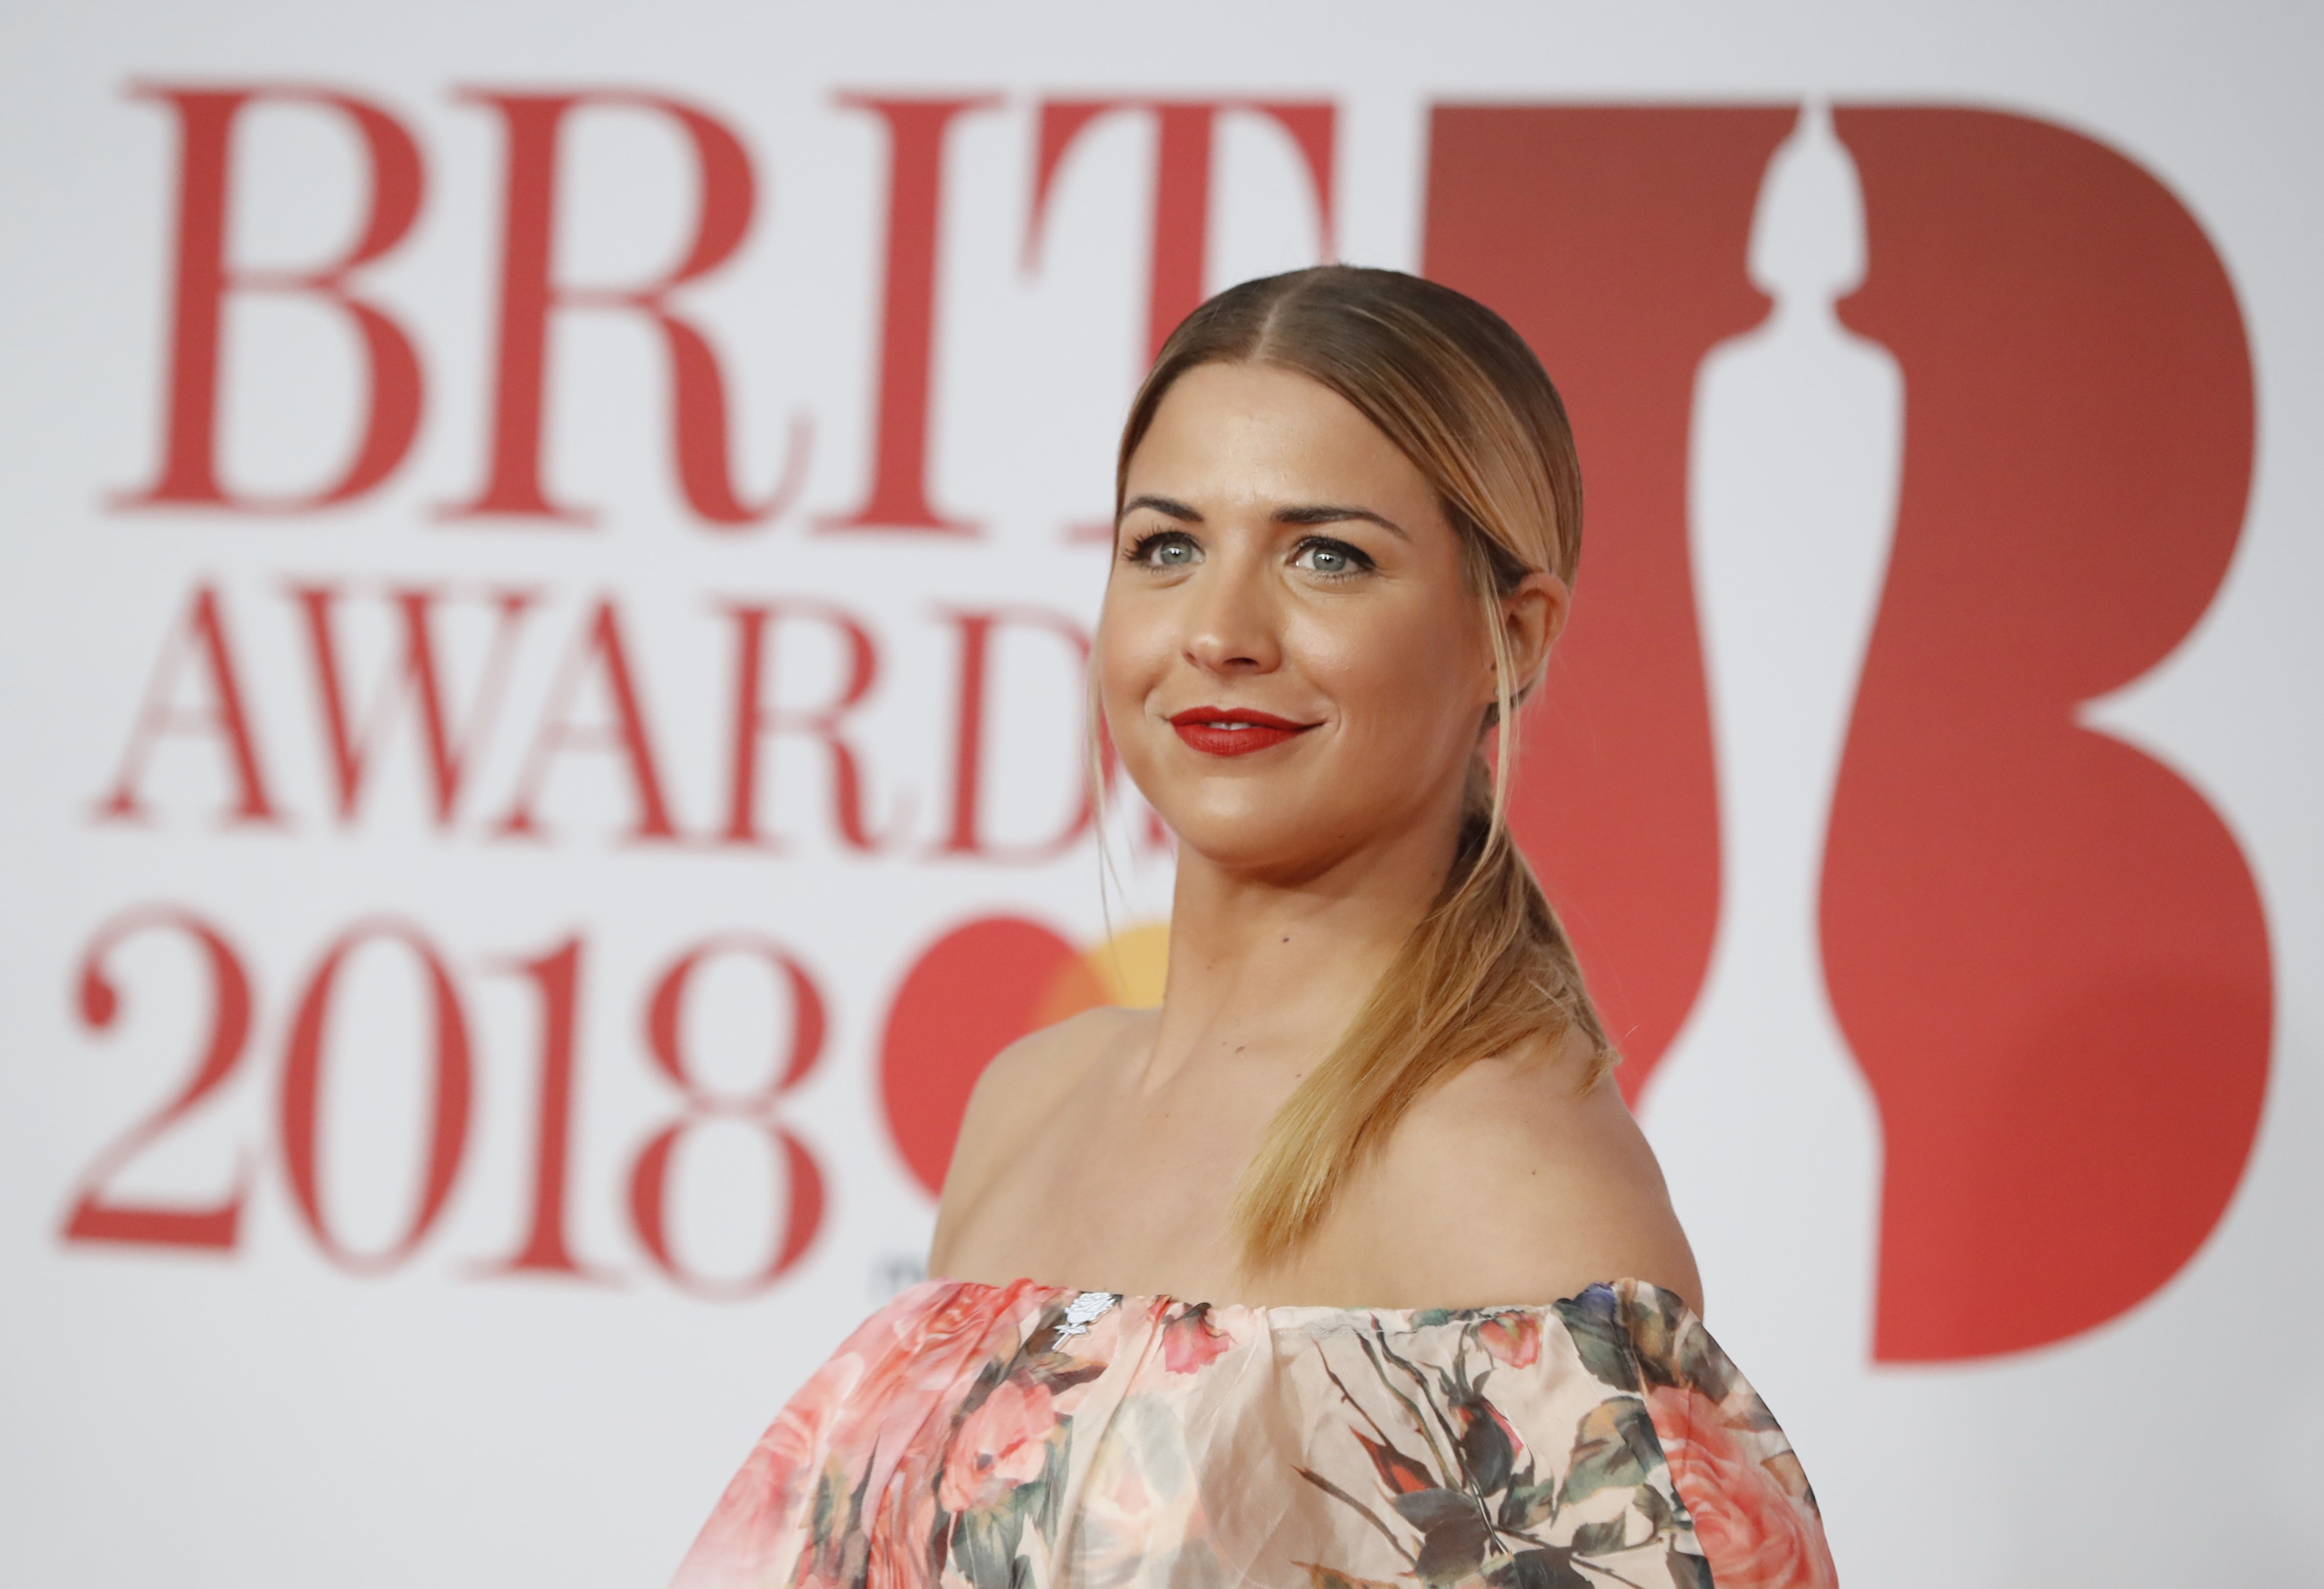 Gemma Atkinson's Had 4 Kidney Infections While Pregnant - Here's the Signs to Watch out For